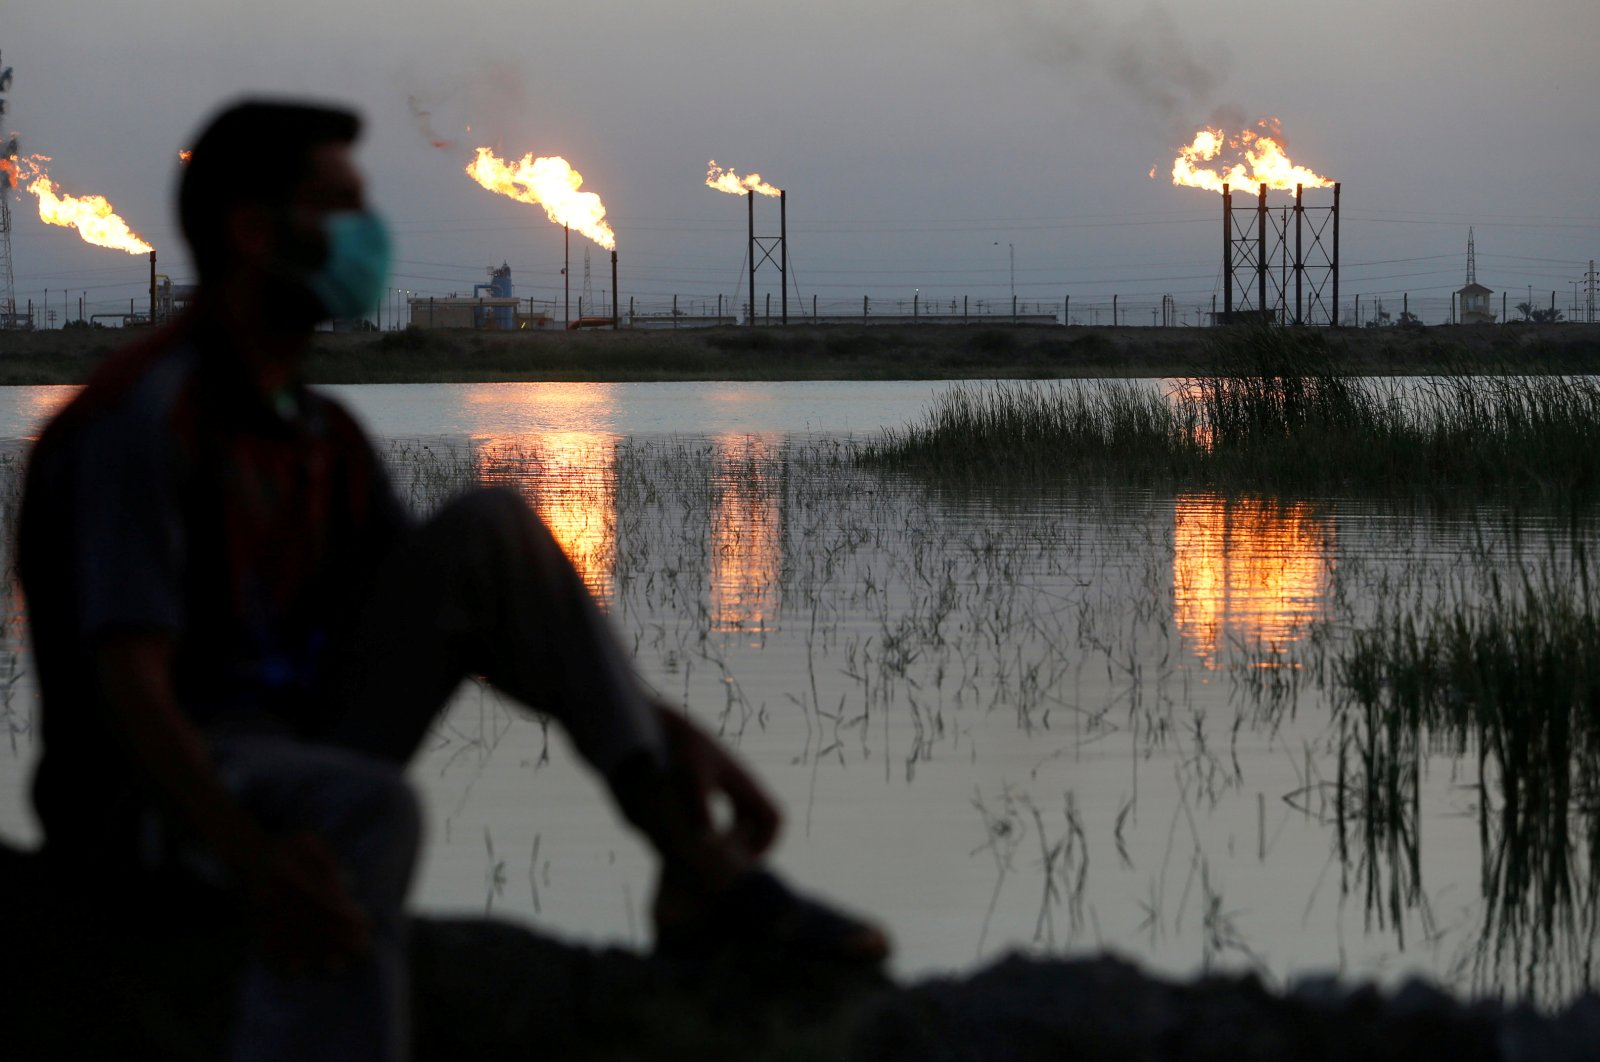 Flames emerge from flare stacks at Nahr bin Umar oil field, as a man is seen wearing a protective face mask, following the outbreak of the coronavirus, north of Basra, Iraq, March 9, 2020. (Reuters Photo)